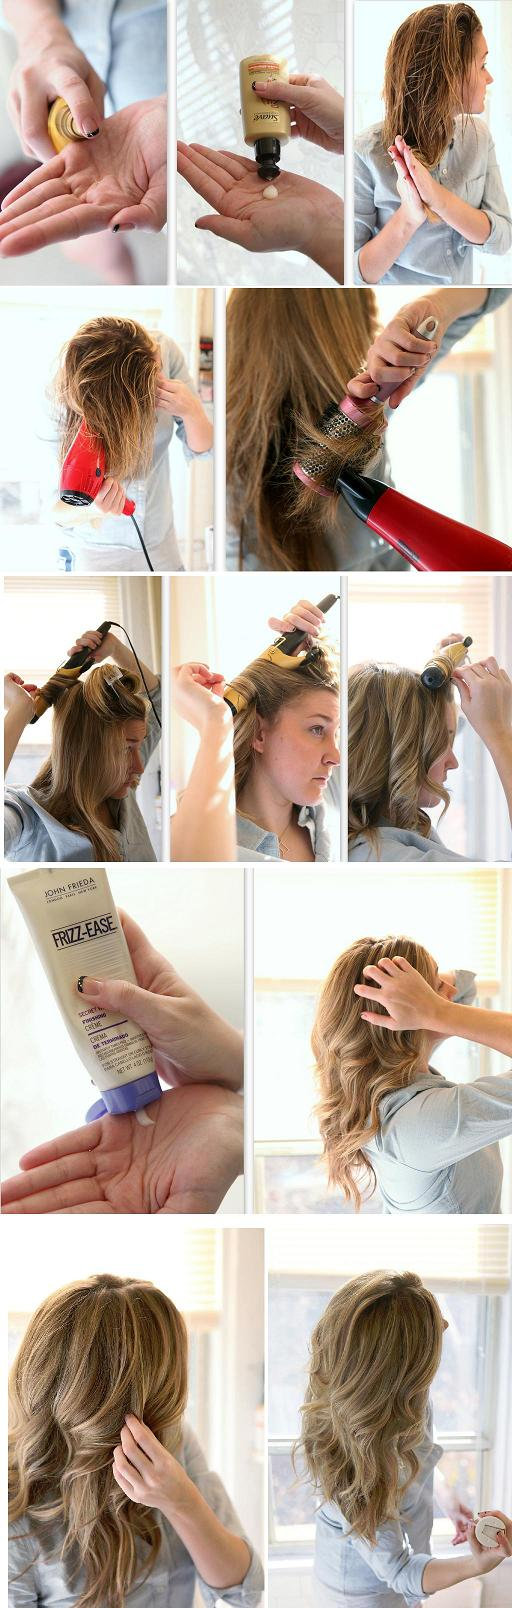 11 Simple, Life Changing Ways To Make Doing Your Hair Easy And Perfect